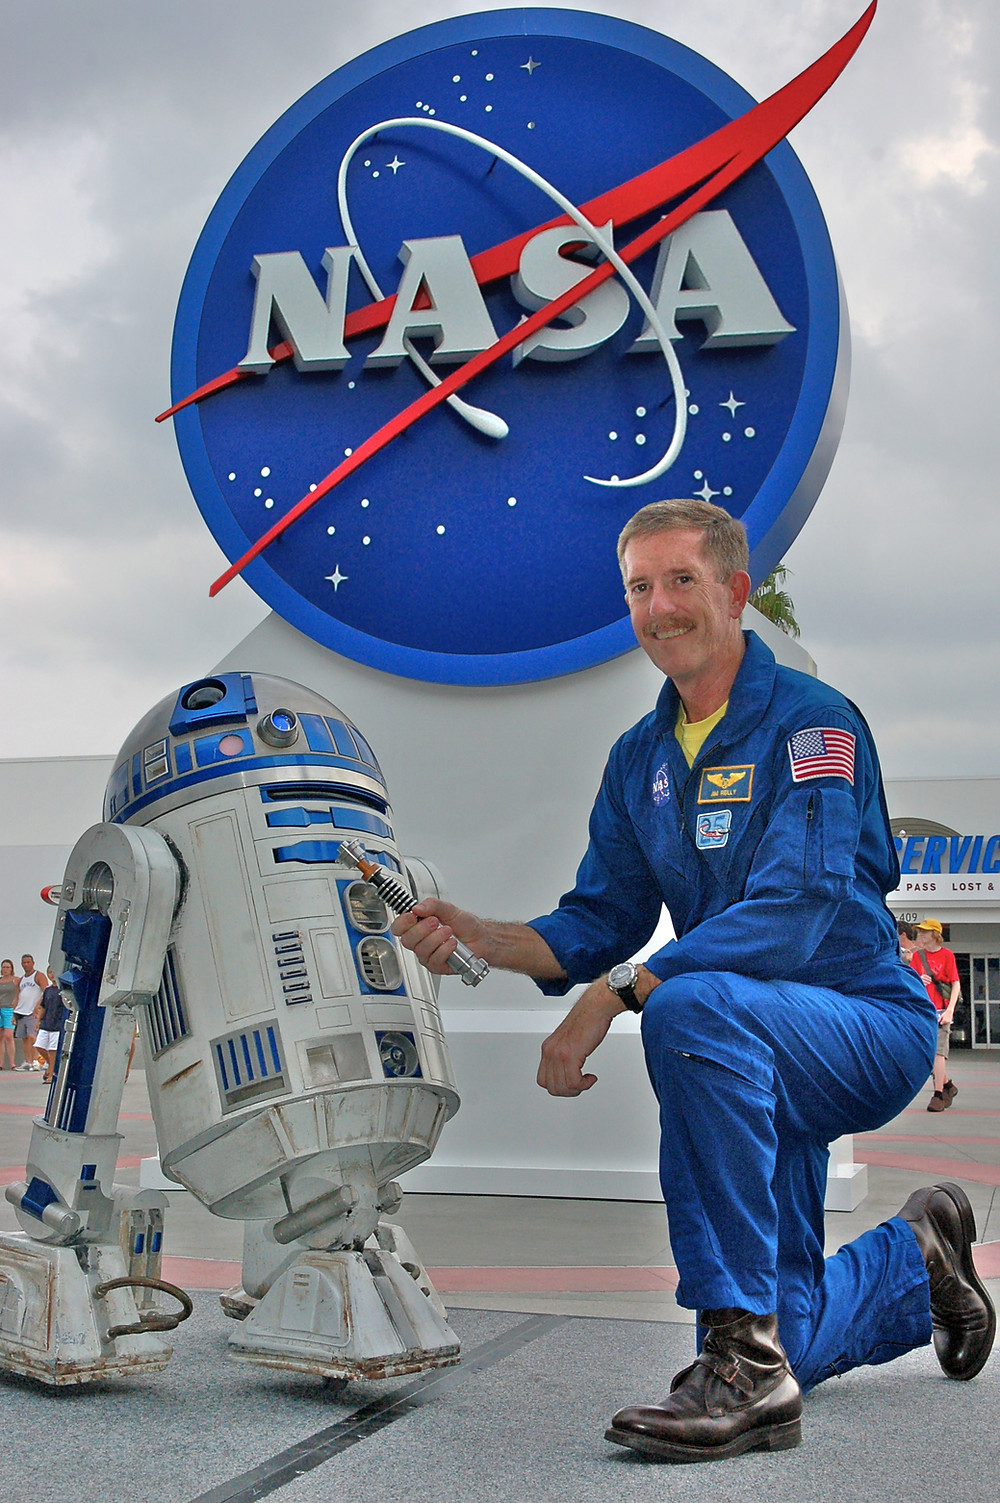 Astronaut Jim F Reilly and R2-D2 pose with a lightsaber in front of the NASA logo